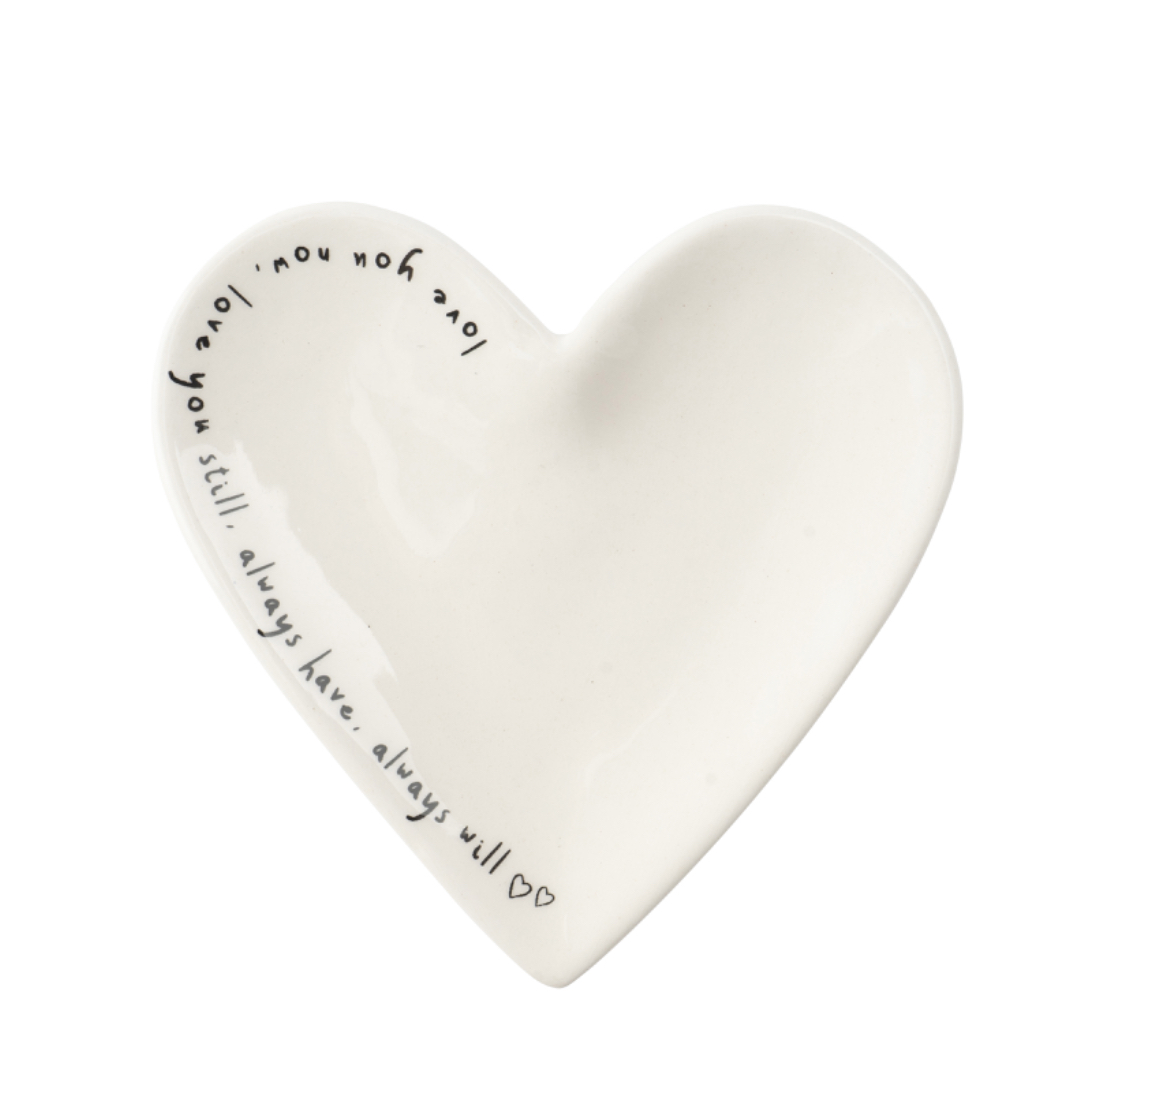 Ceramic heart ring dish. Love you now love you still always have always will